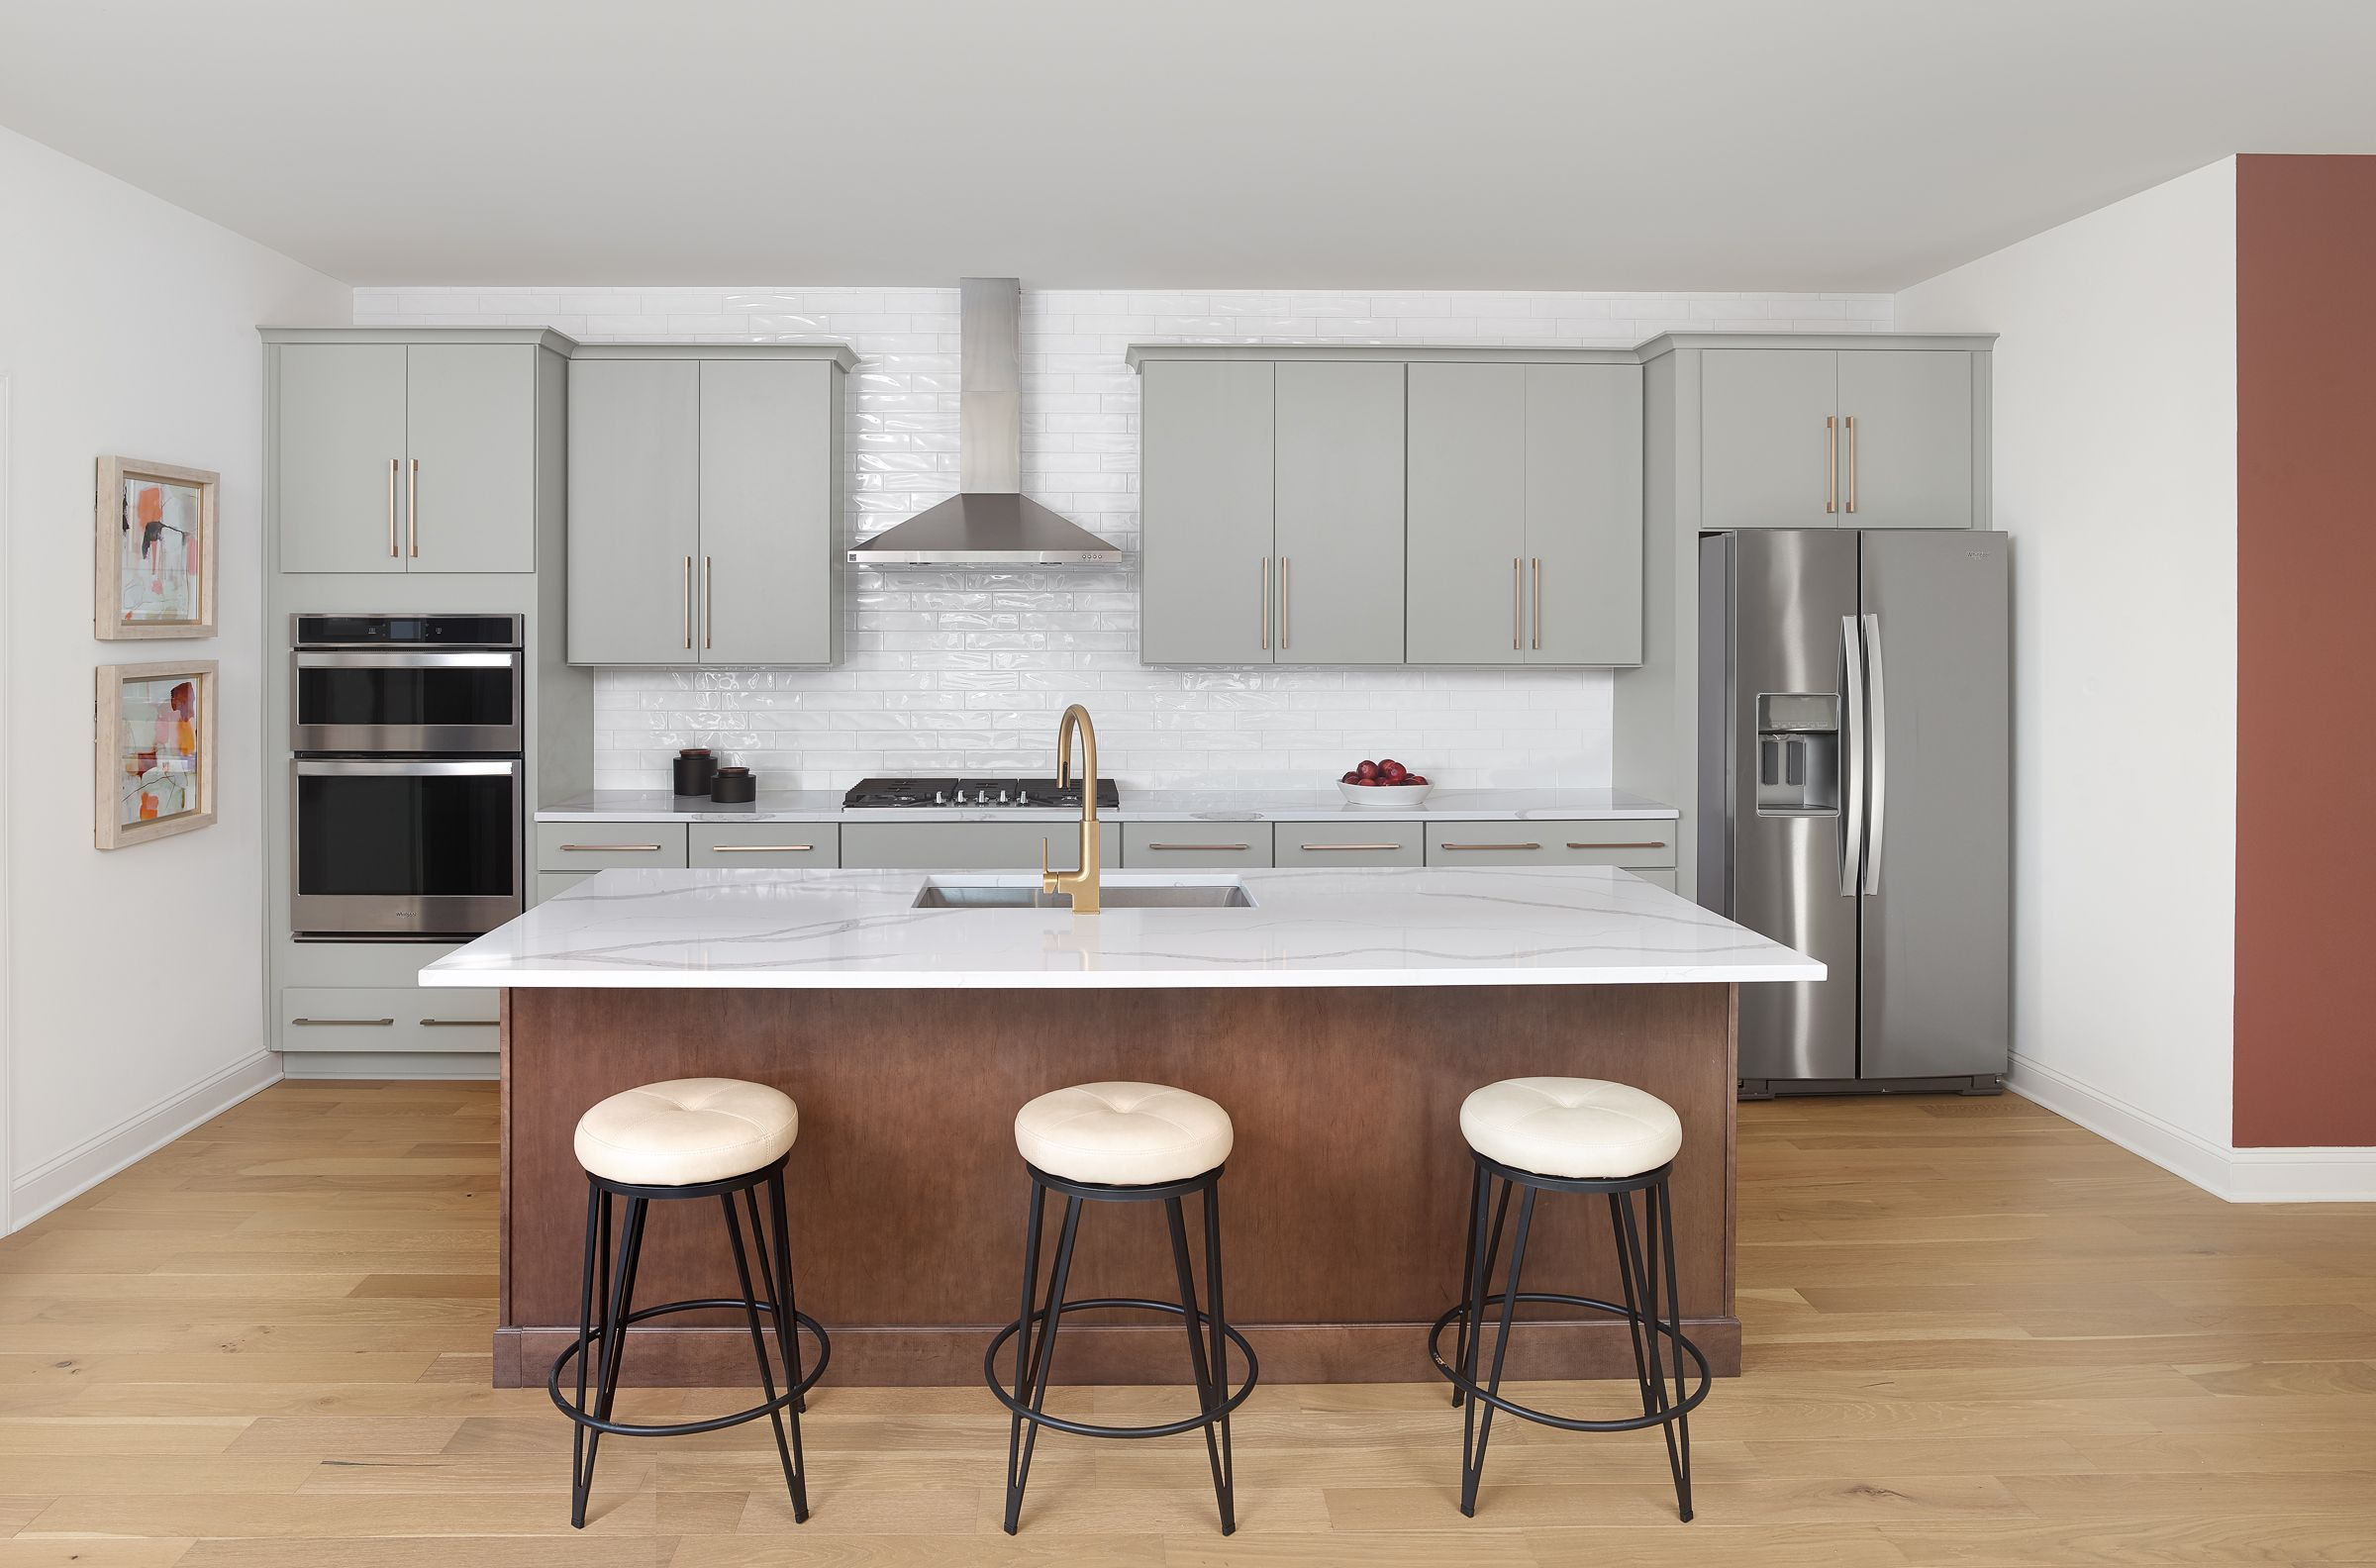 Kitchen featured in the Reese By Ashton Woods in Raleigh-Durham-Chapel Hill, NC